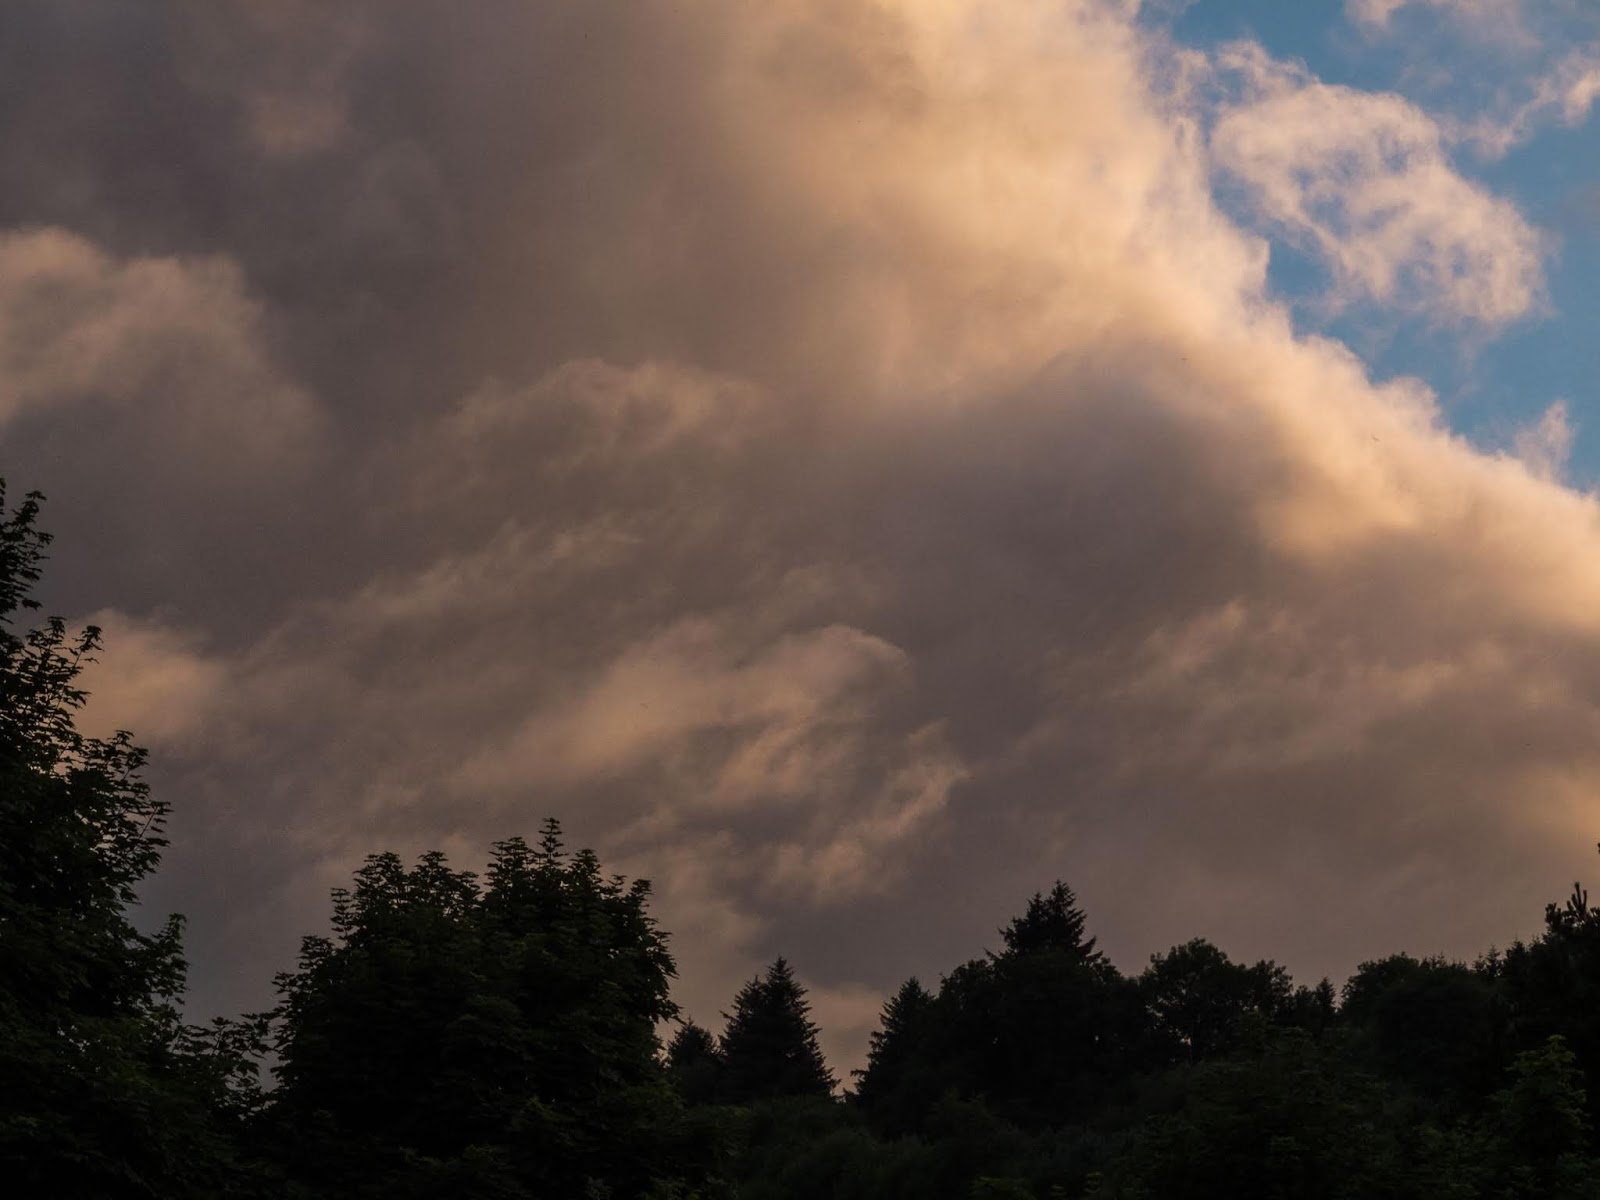 Sunset clouds over a forest canopy in the Boggeragh Mountains in Co.Cork.